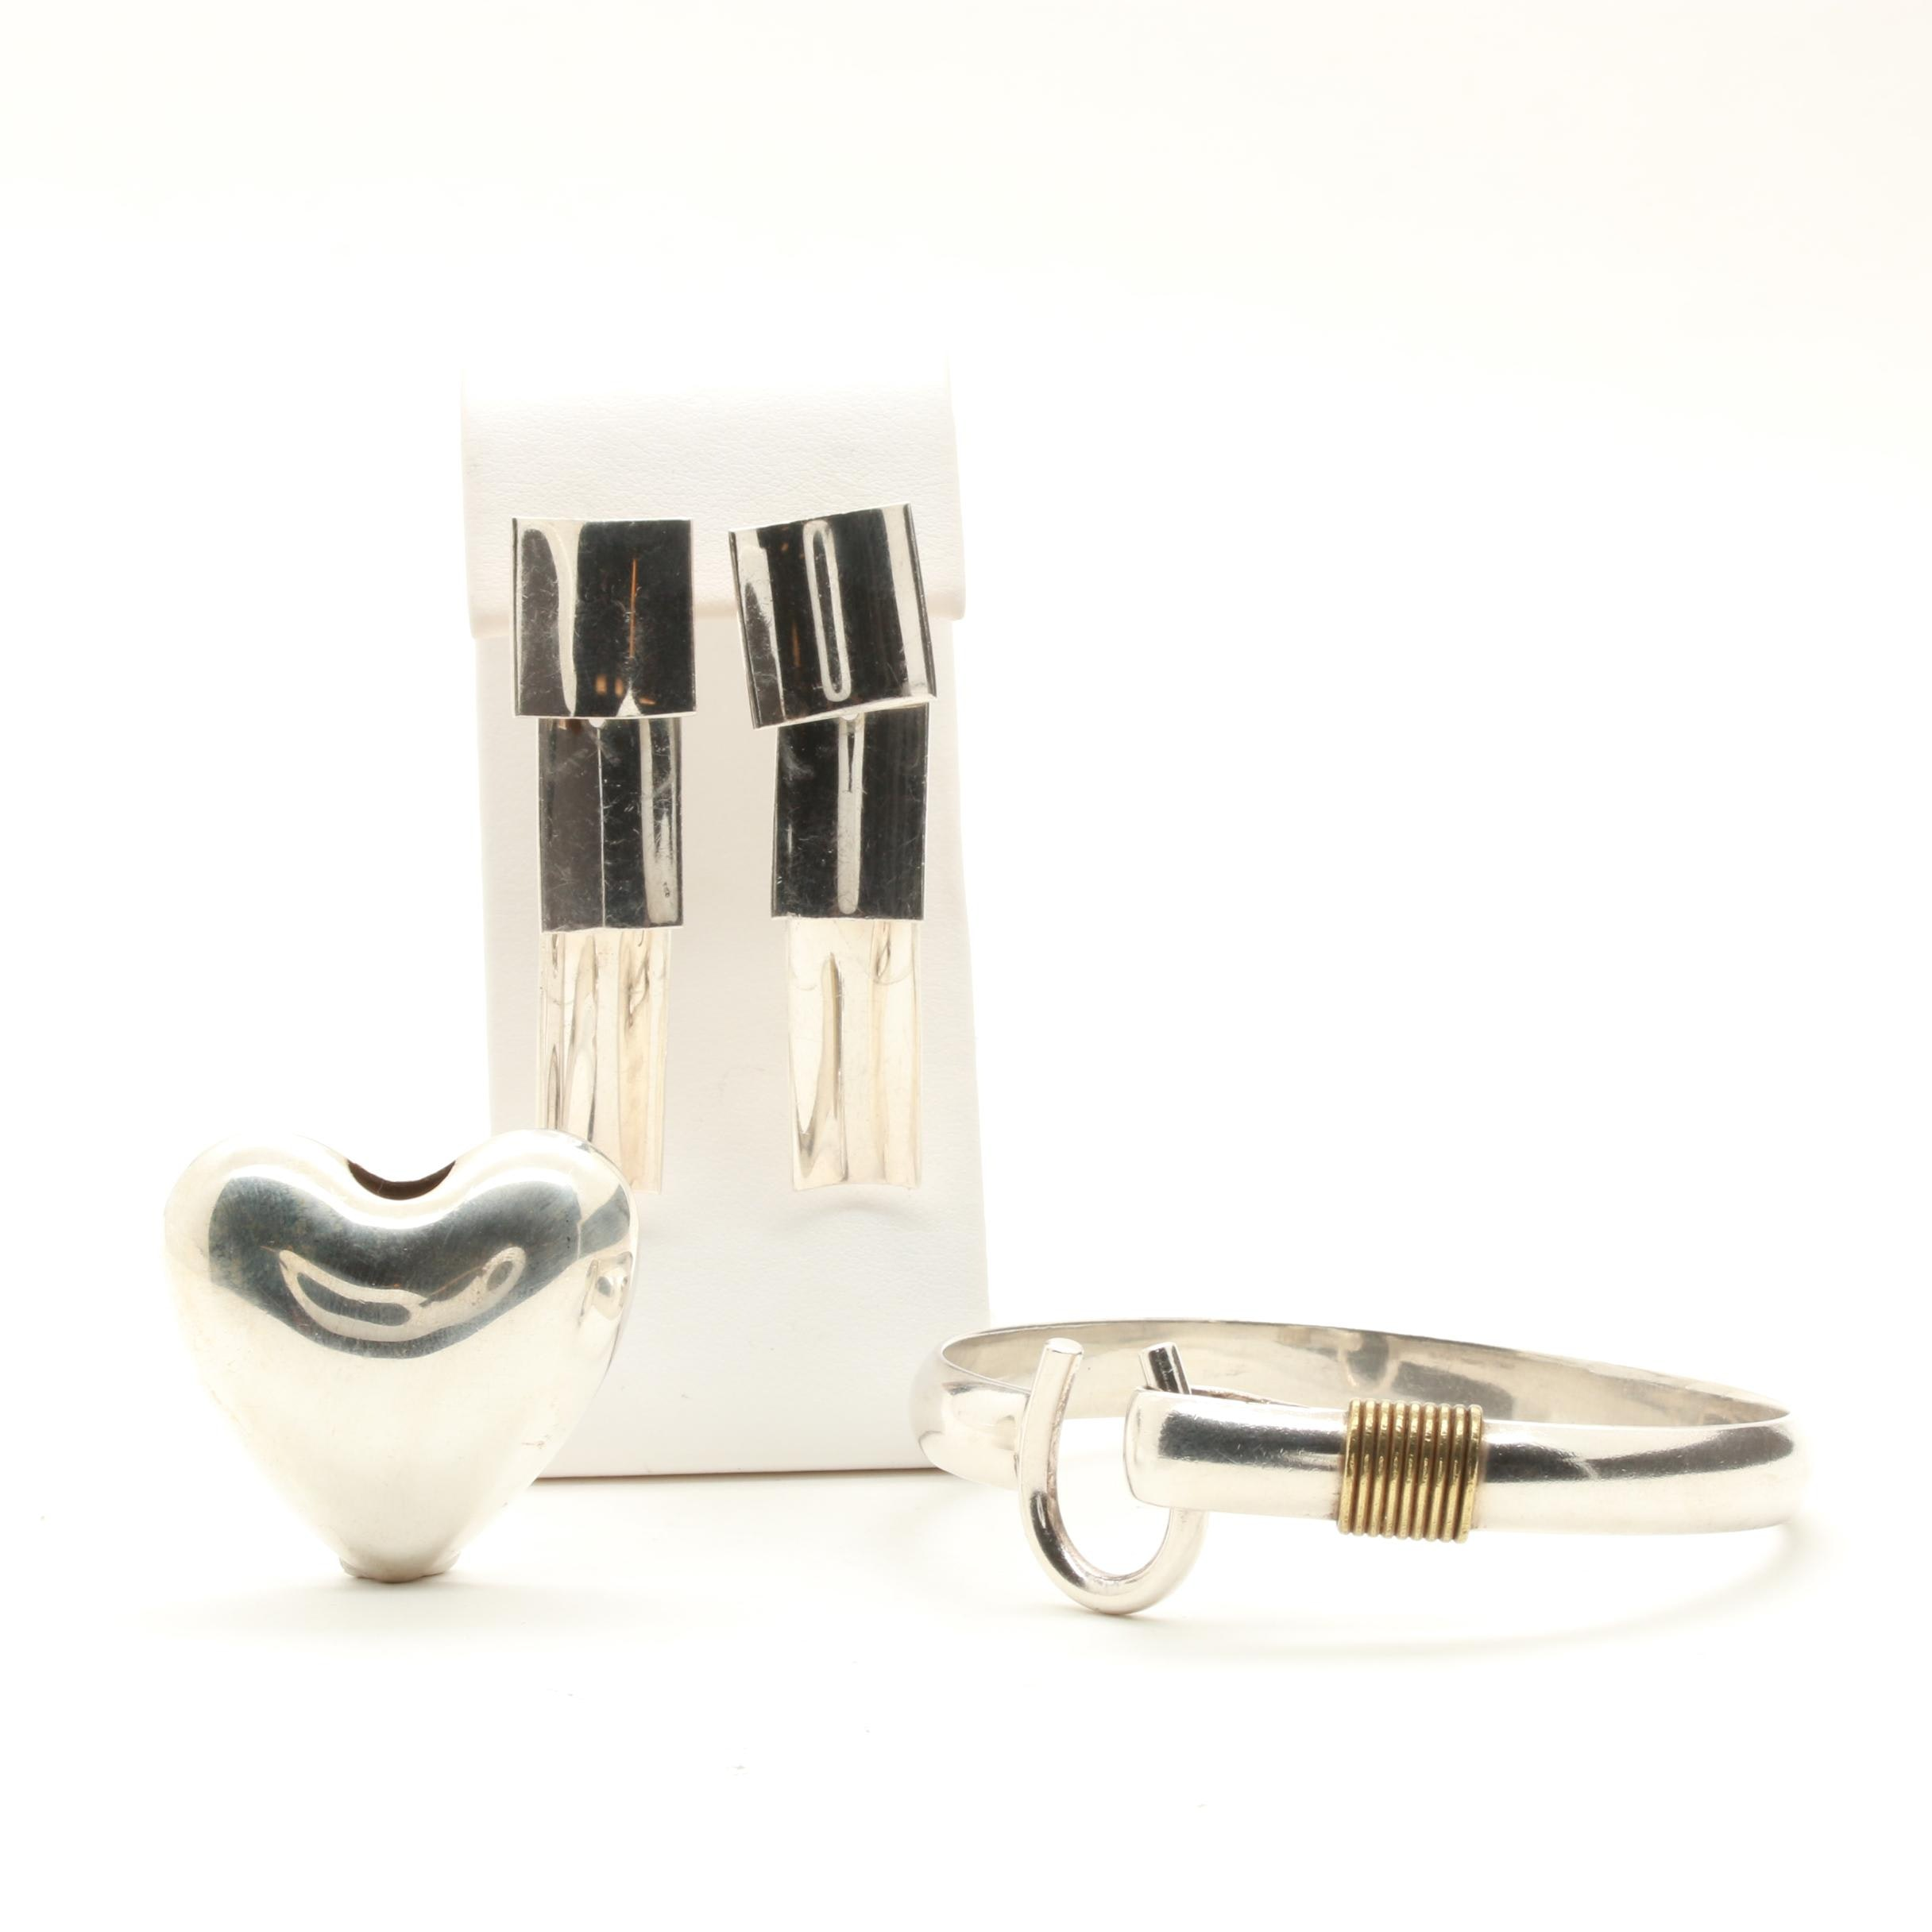 Sterling Silver Jewelry Selection Including Reed & Barton and D.K. Sterling